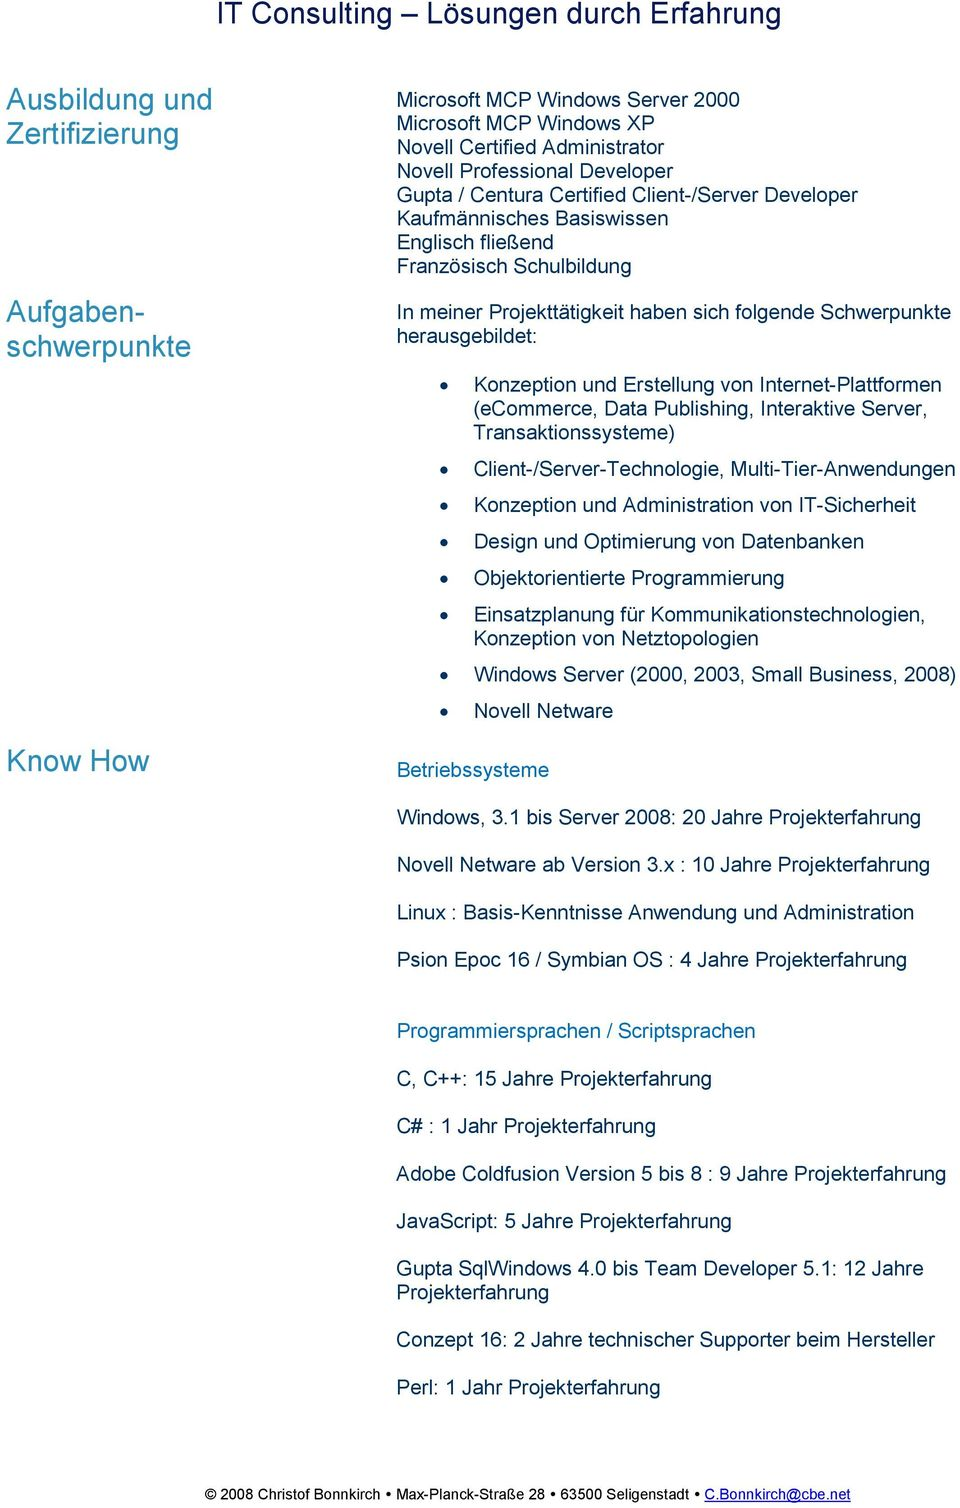 Schwerpunkte herausgebildet: Konzeption und Erstellung von Internet-Plattformen (ecommerce, Data Publishing, Interaktive Server, Transaktionssysteme) Client-/Server-Technologie,